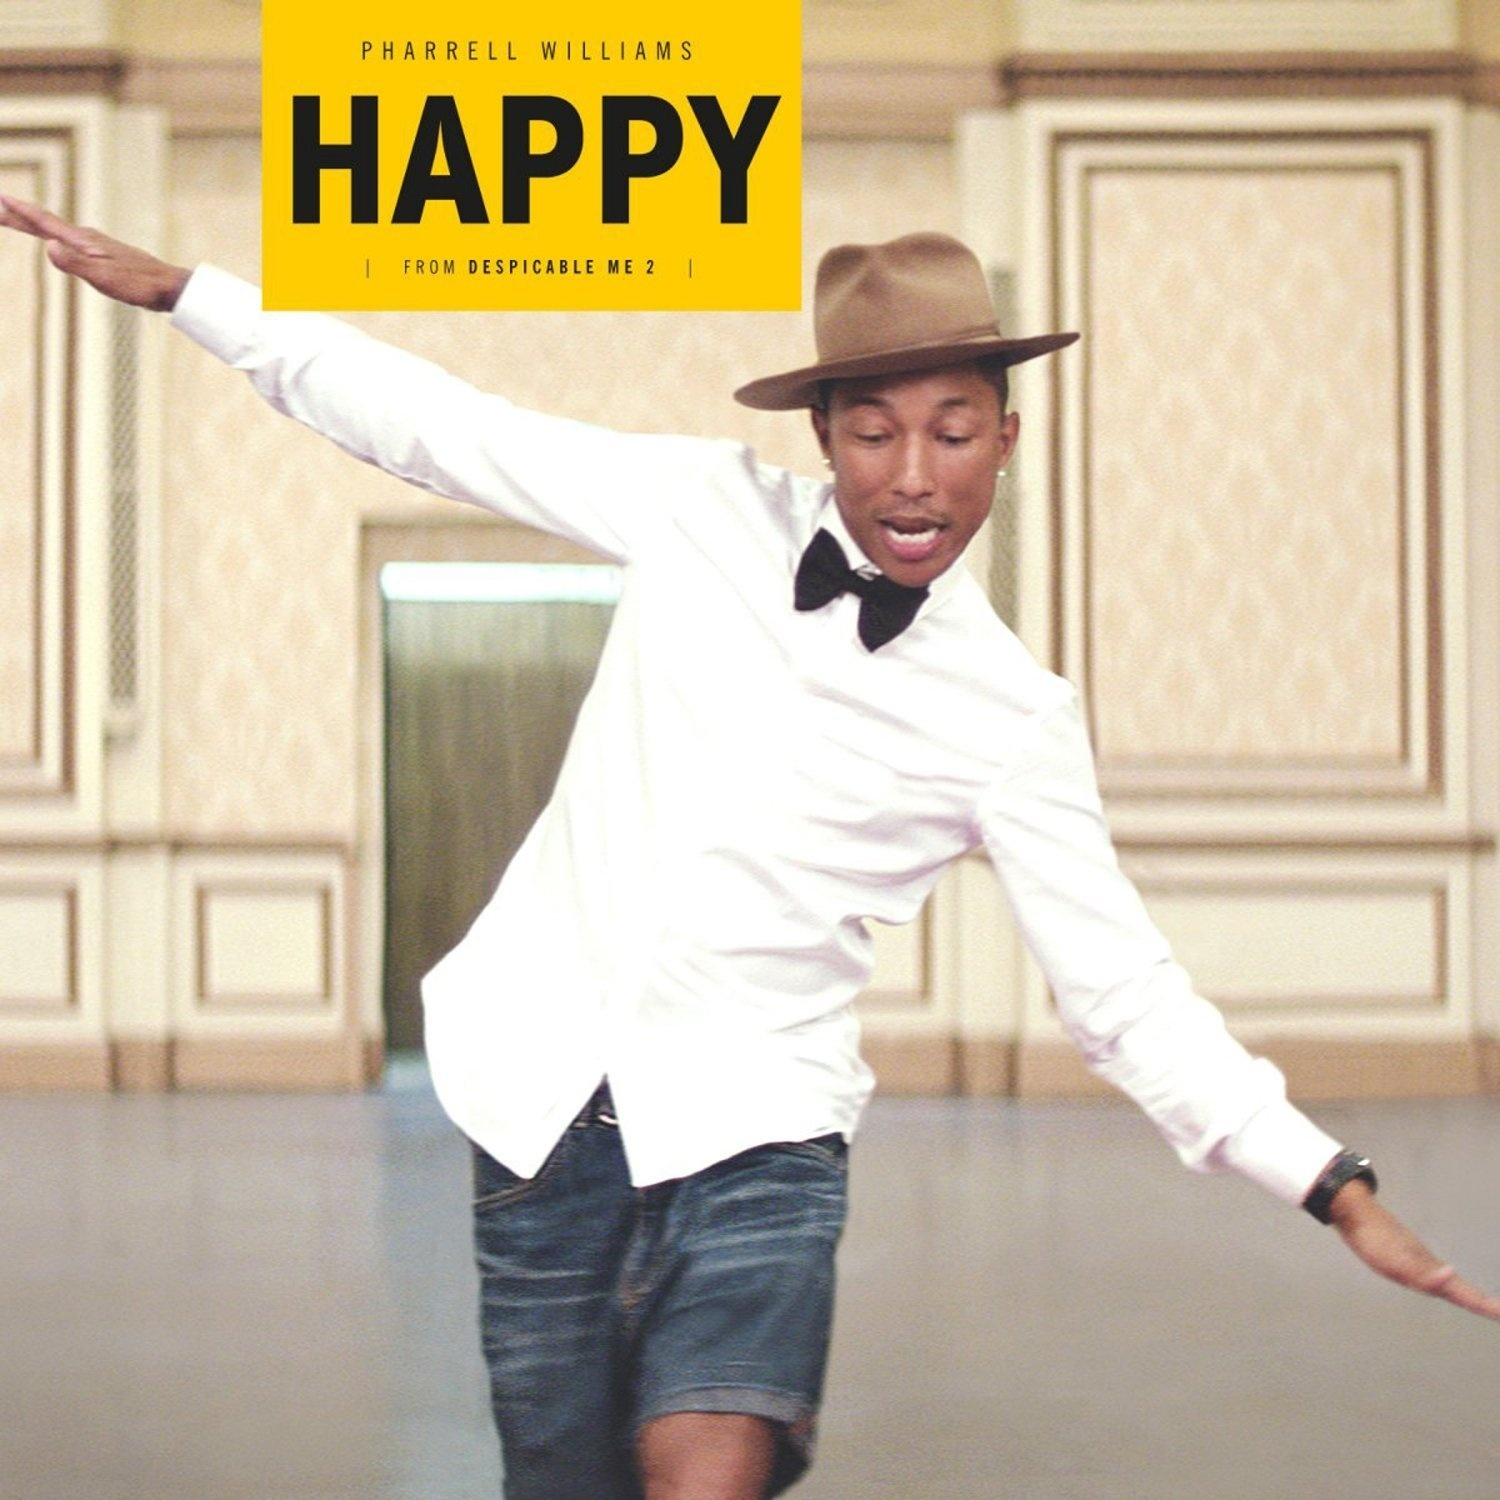 happy pharrell williams 谱子